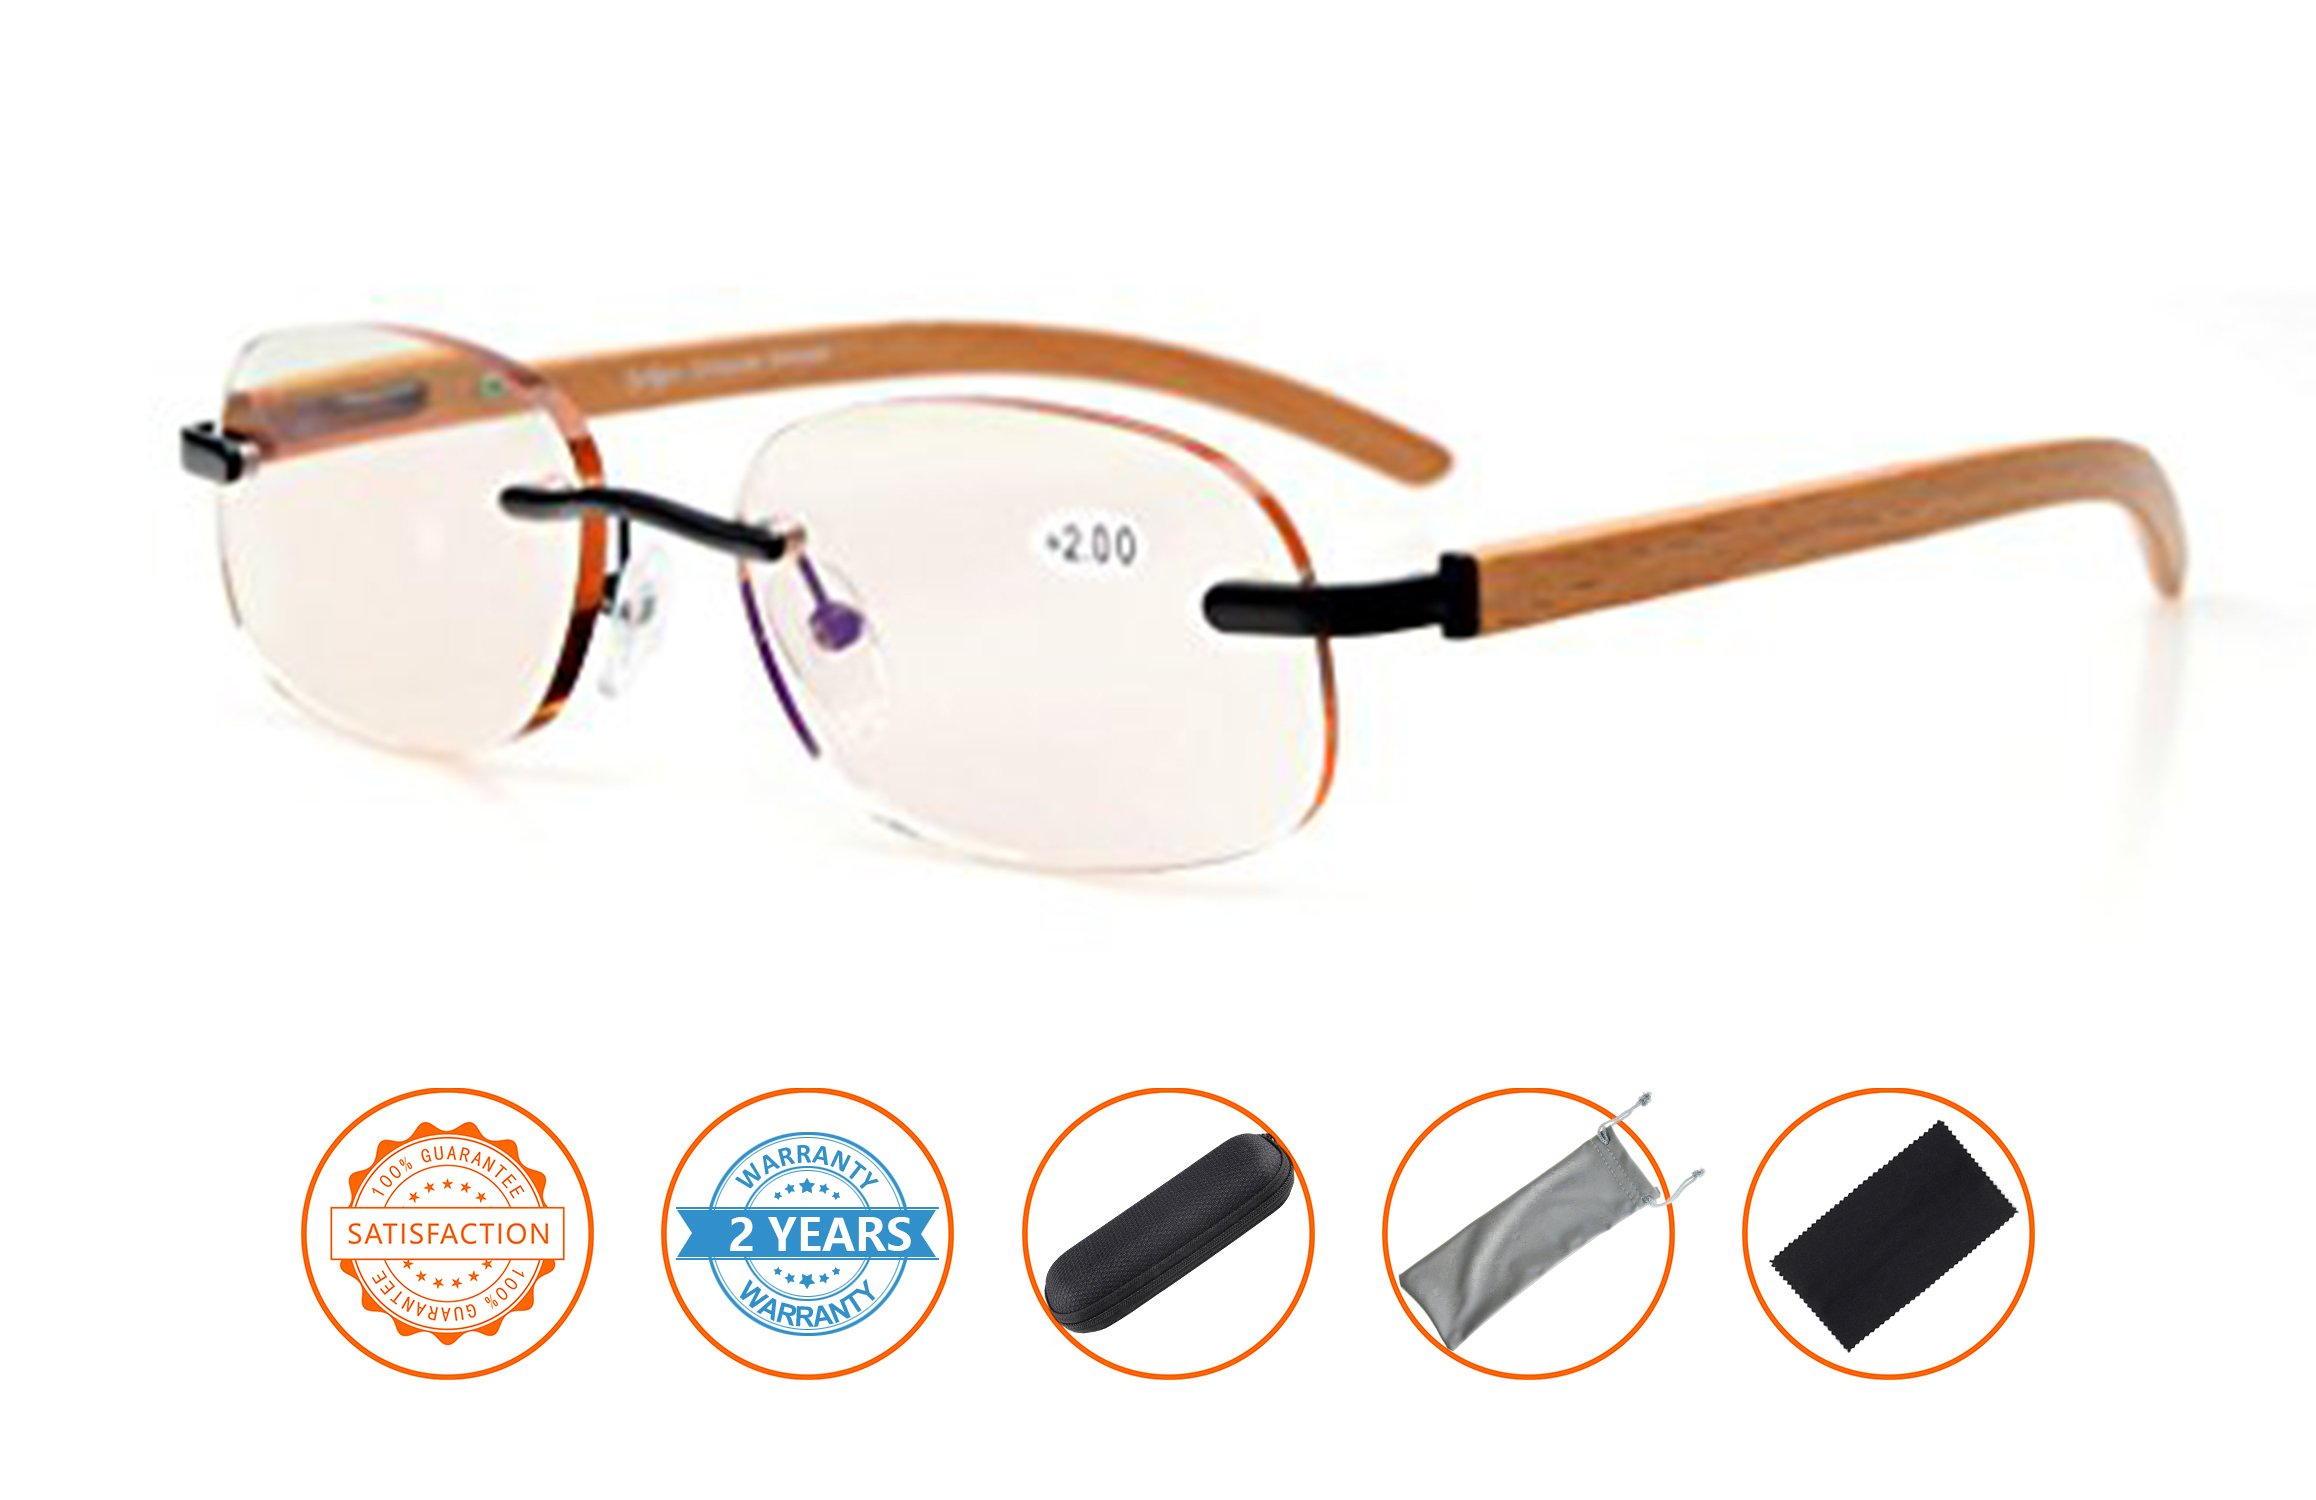 Anti Blue Rays,Reduce Eyestrain,UV Protection,Wood Temple Computer Gaming Reading Glasses Unisex(Black,Amber Tinted Lenses) +1.75